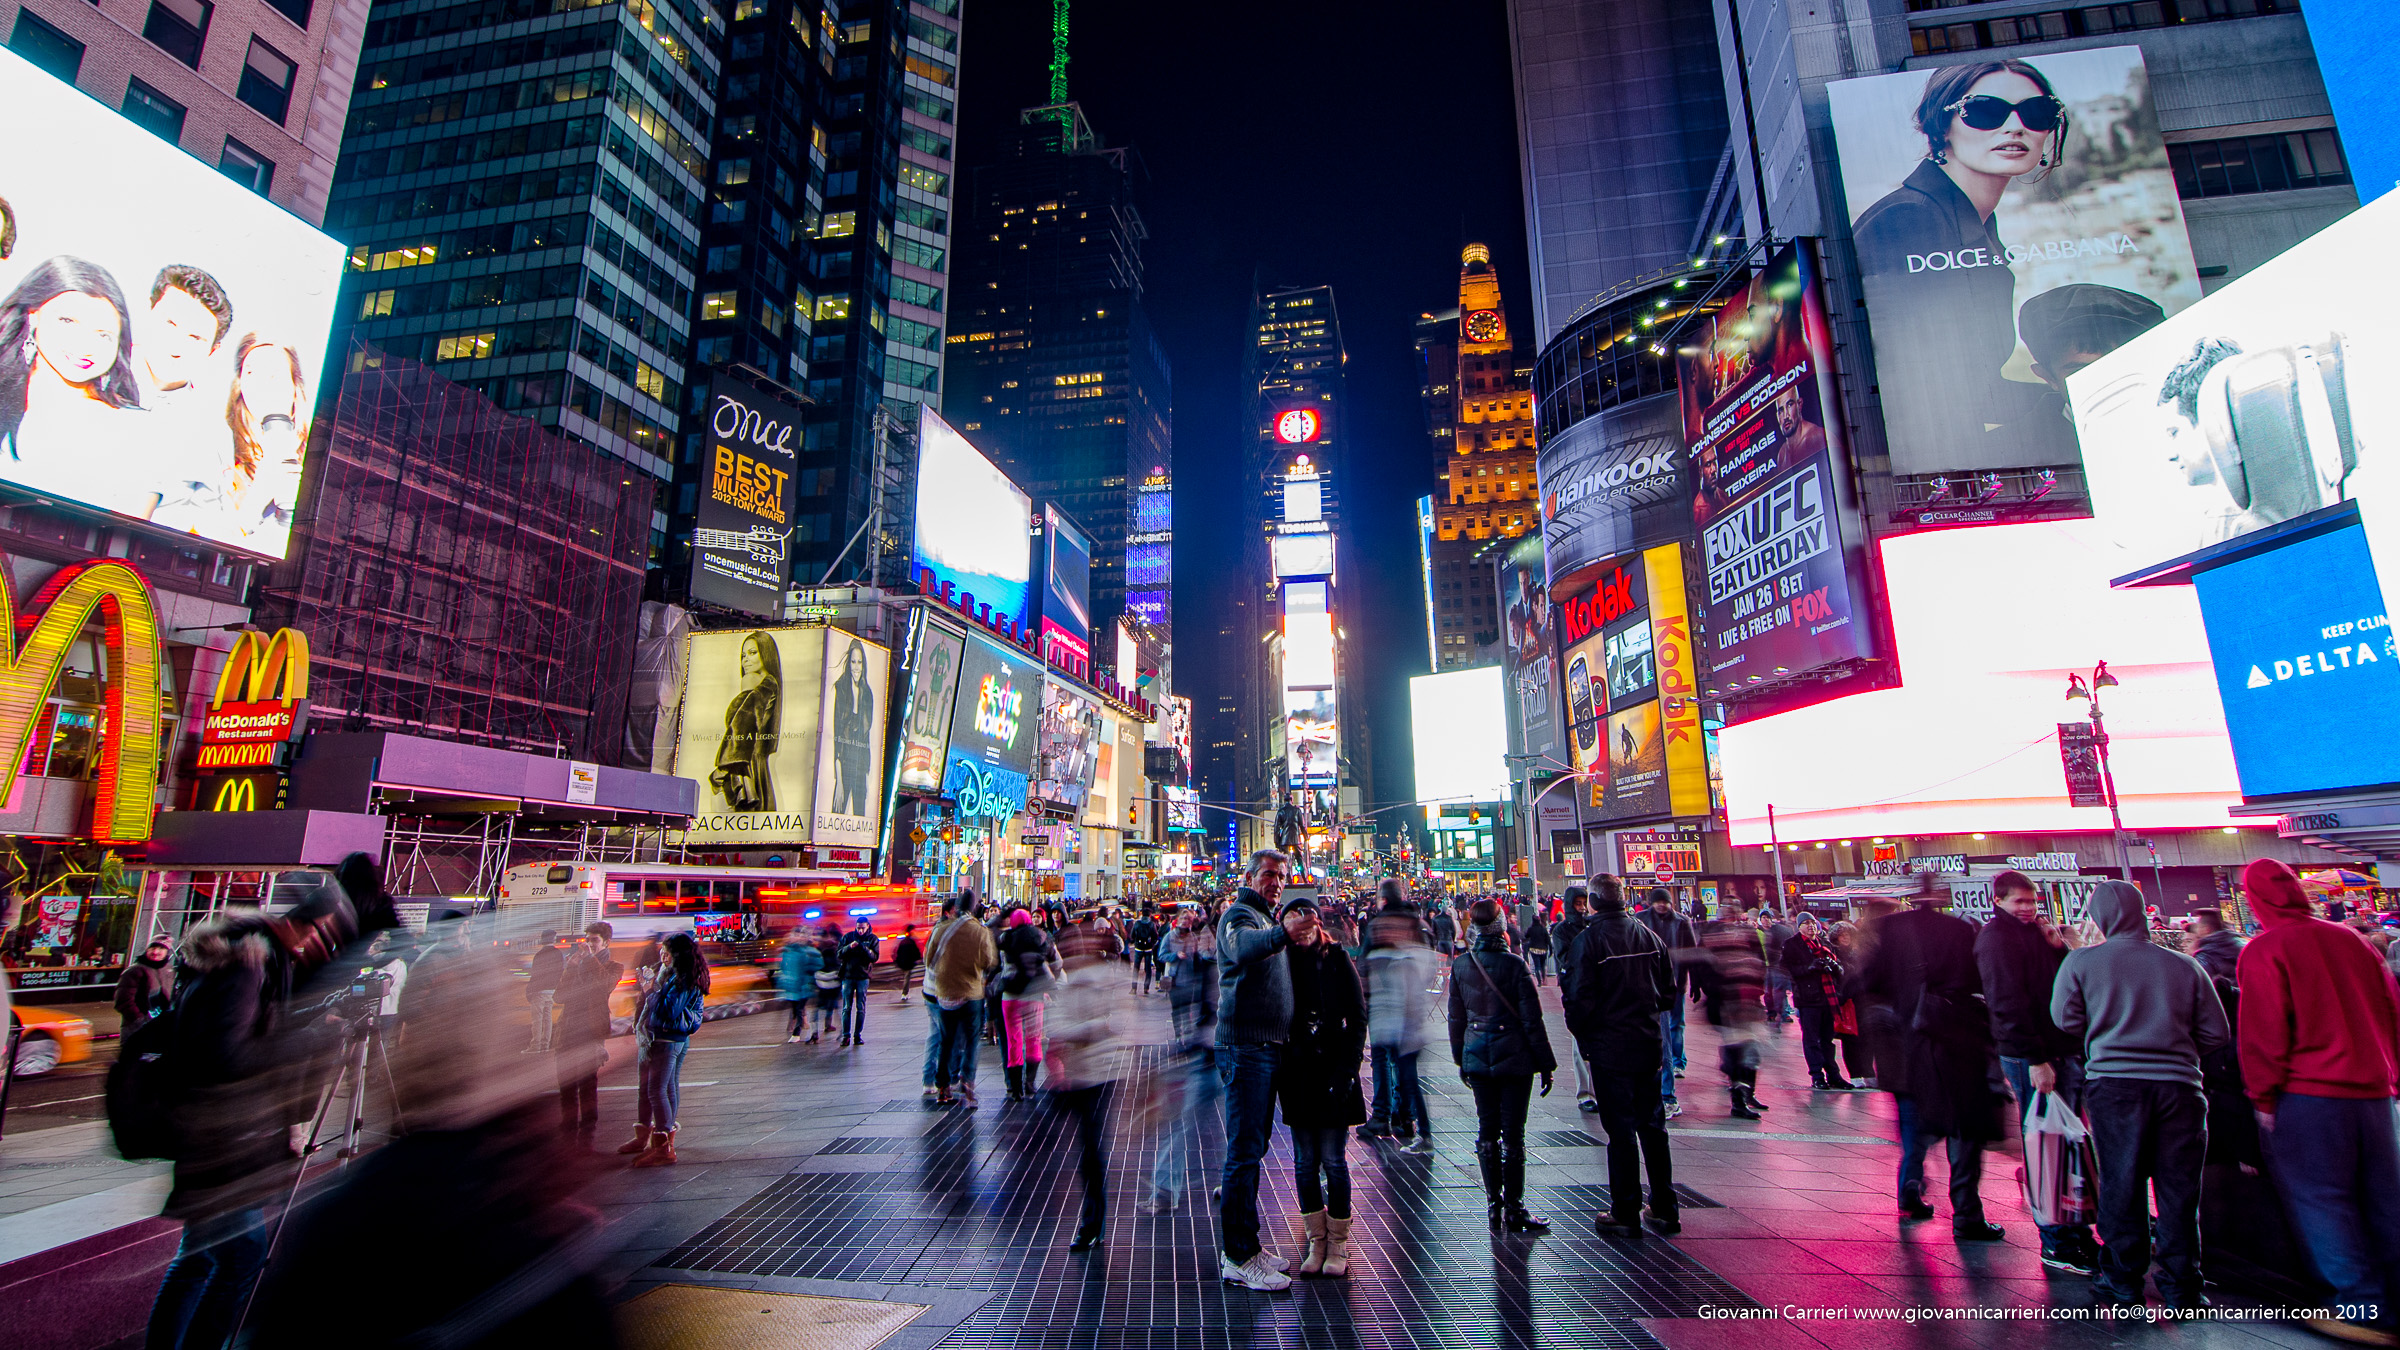 Times Square: uno dei maggiori incroci del distretto newyorkese di Manhattan, all'intersezione tra Broadway e la Seventh Avenue e si estende dalla West 42nd Street alla West 47th Street